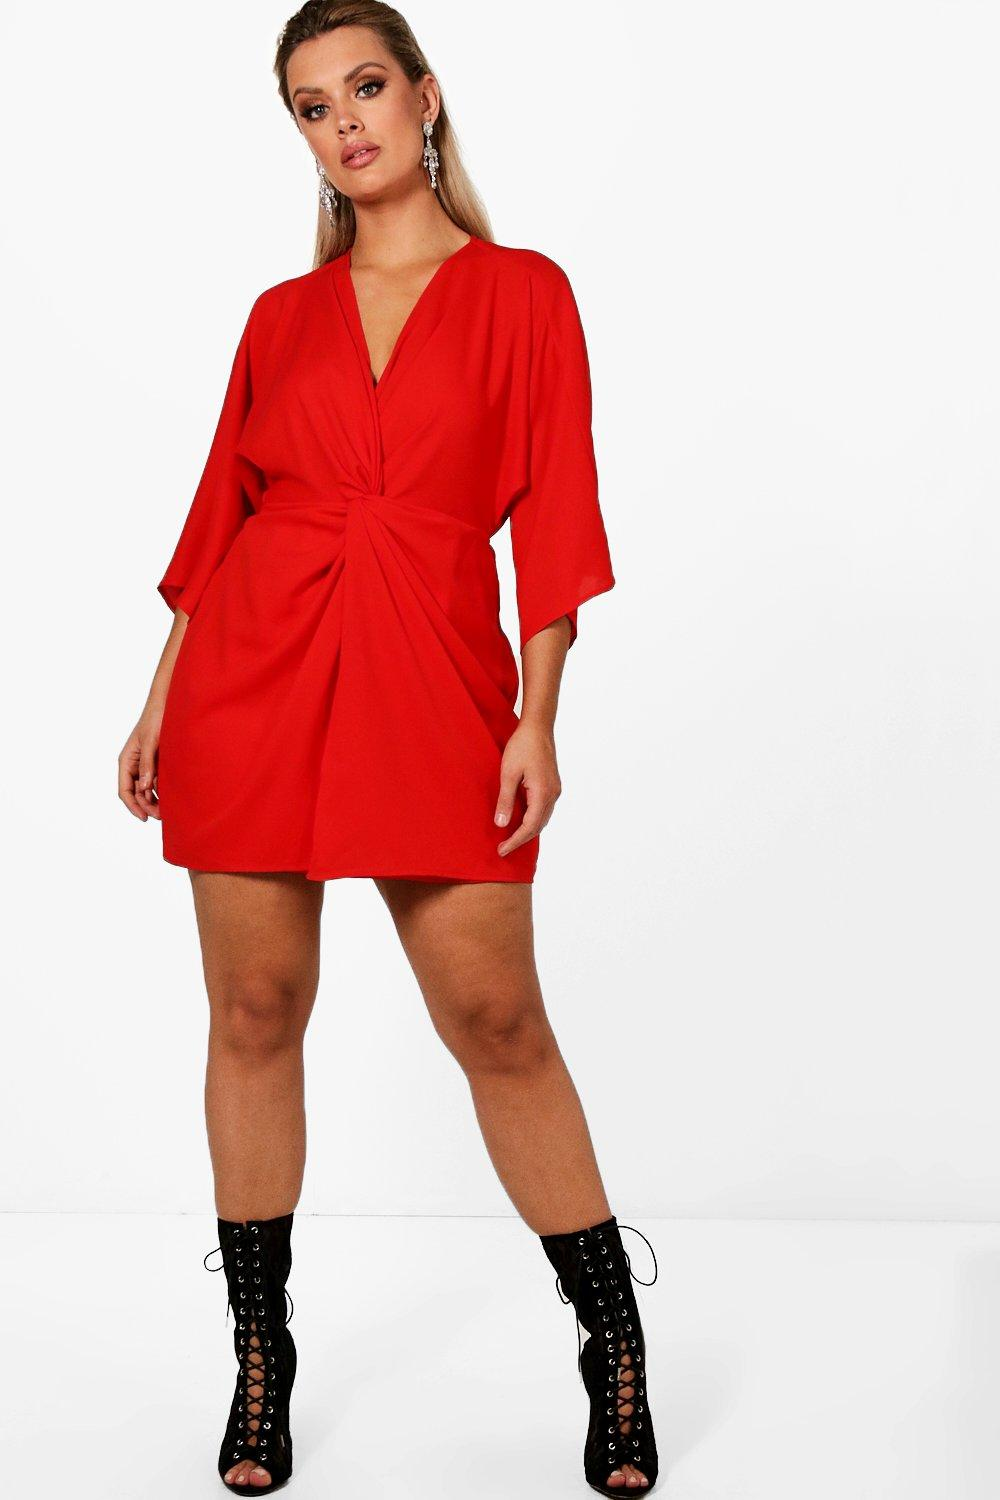 daa2e9af45d7 Womens Red Plus Knot Detail 3/4 Sleeve Dress. Hover to zoom